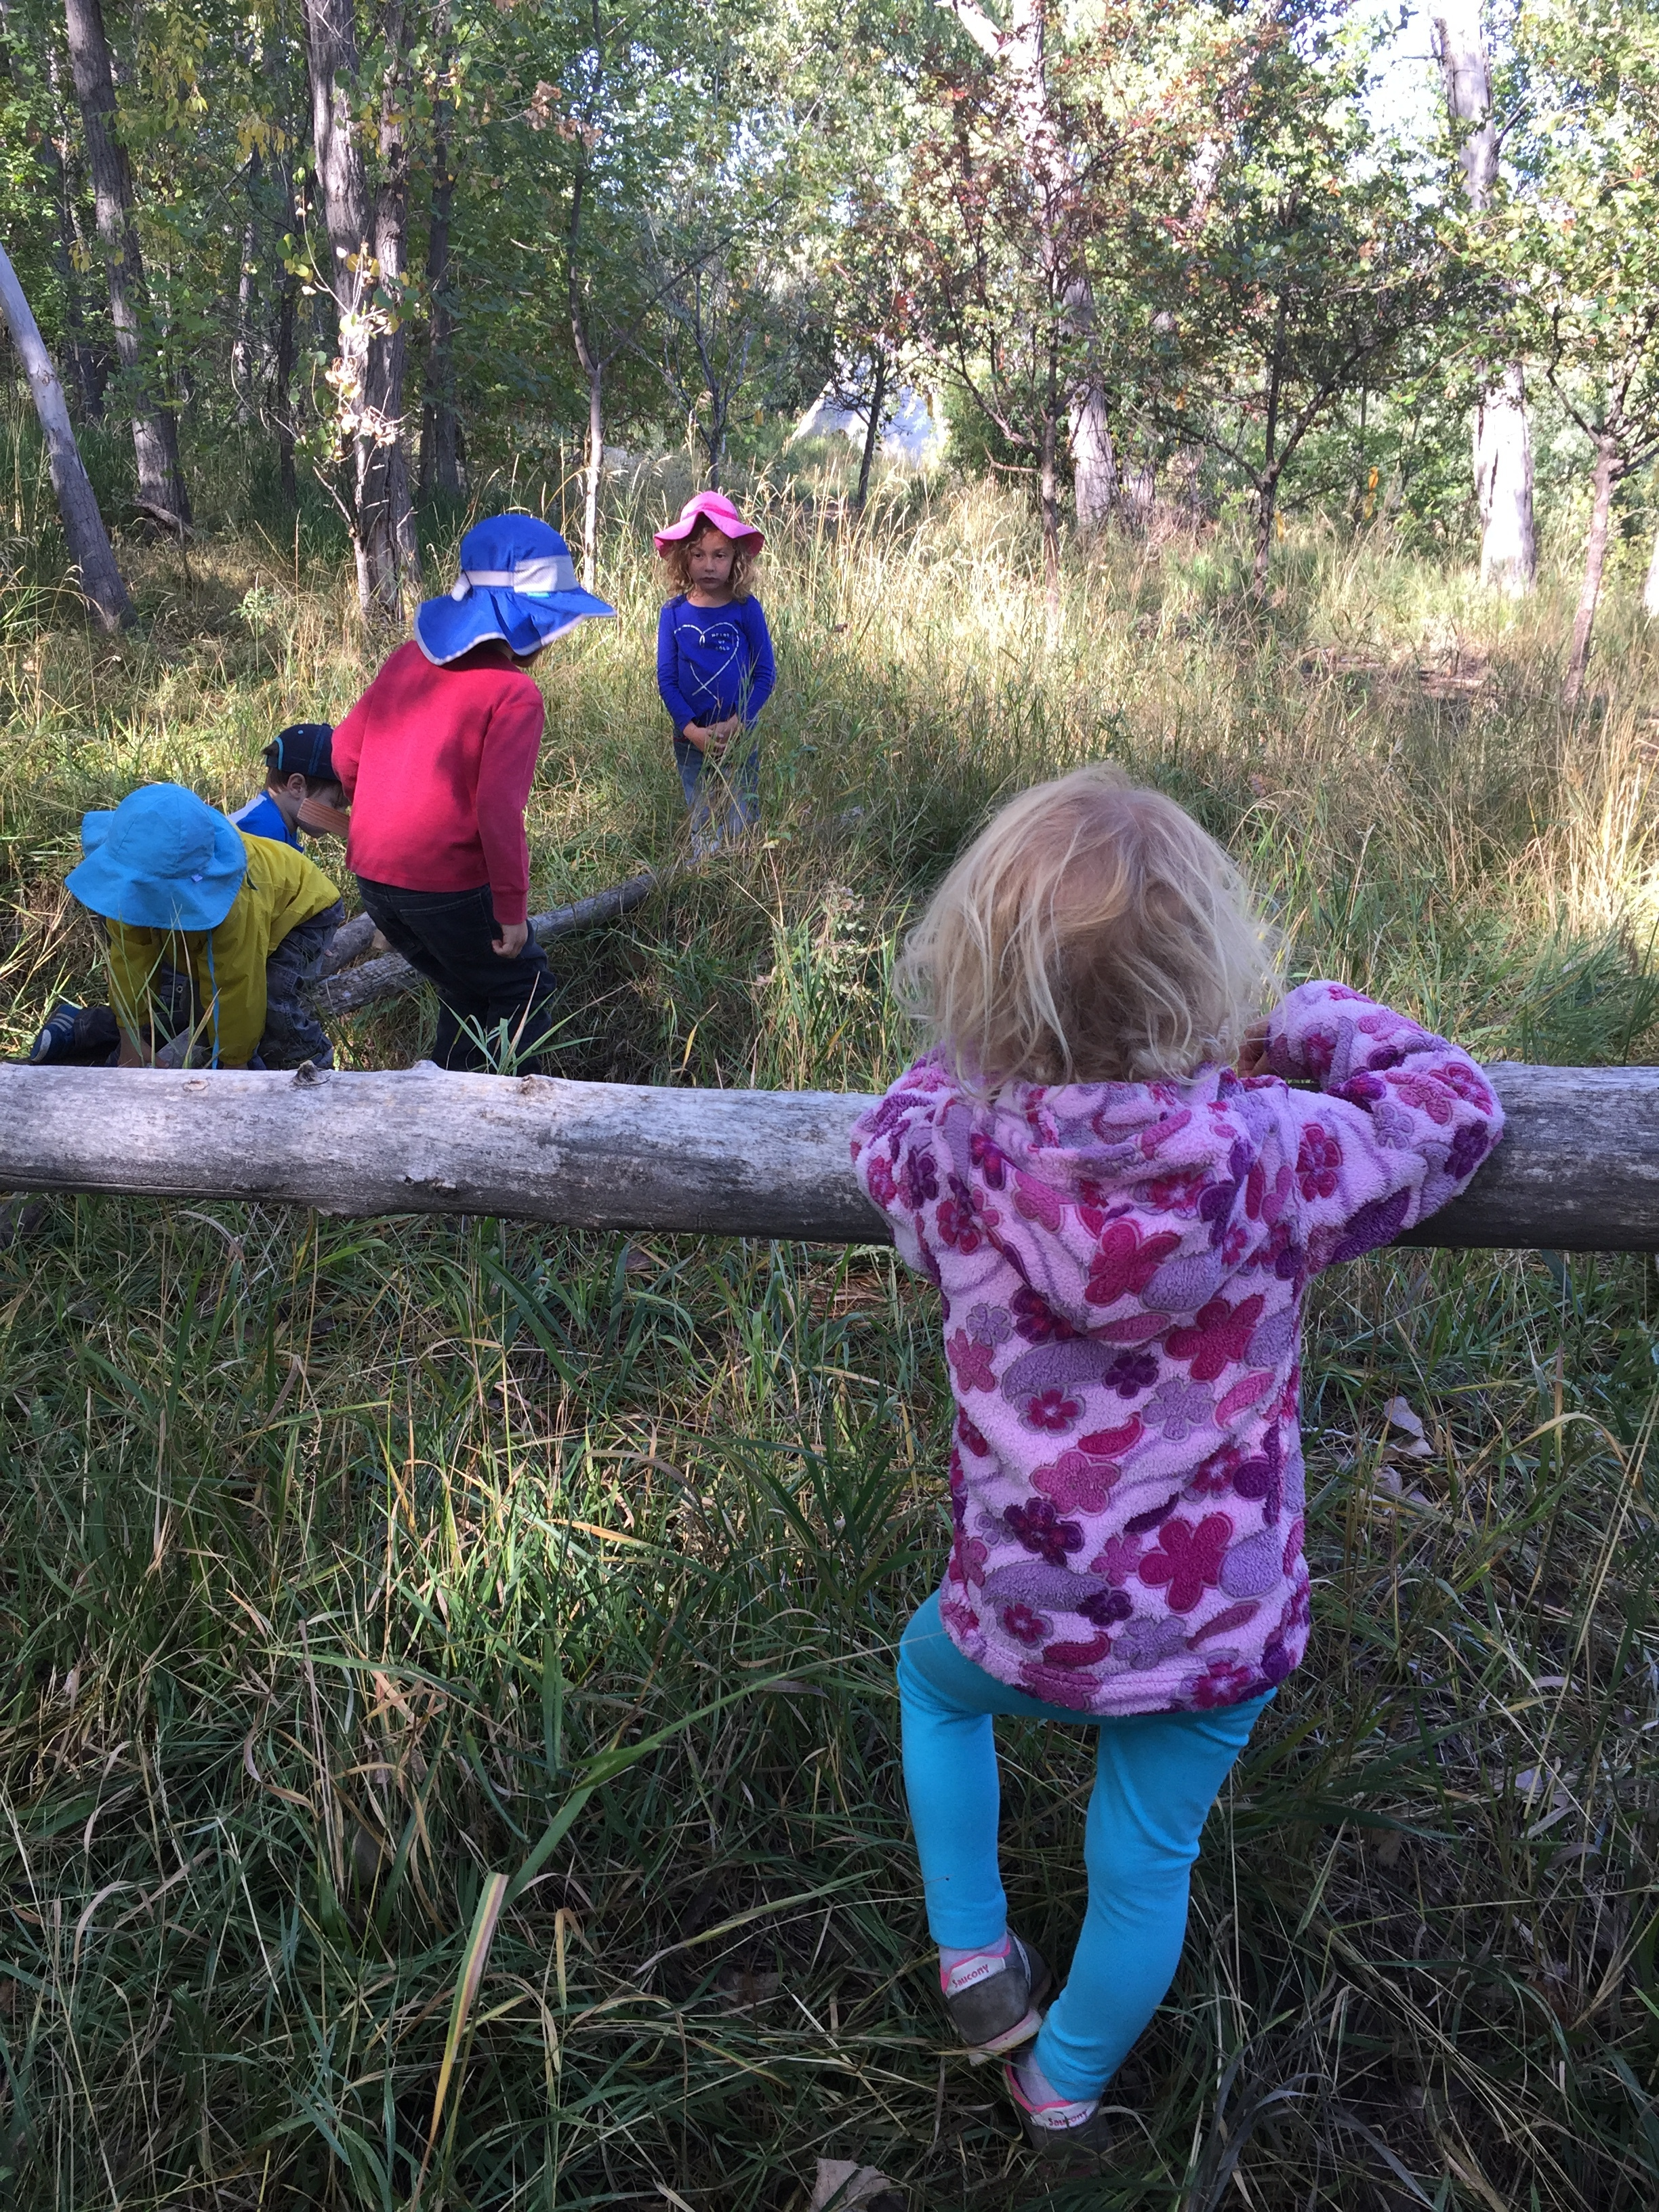 Watching each other and learning about the land are what our first weeks are all about.